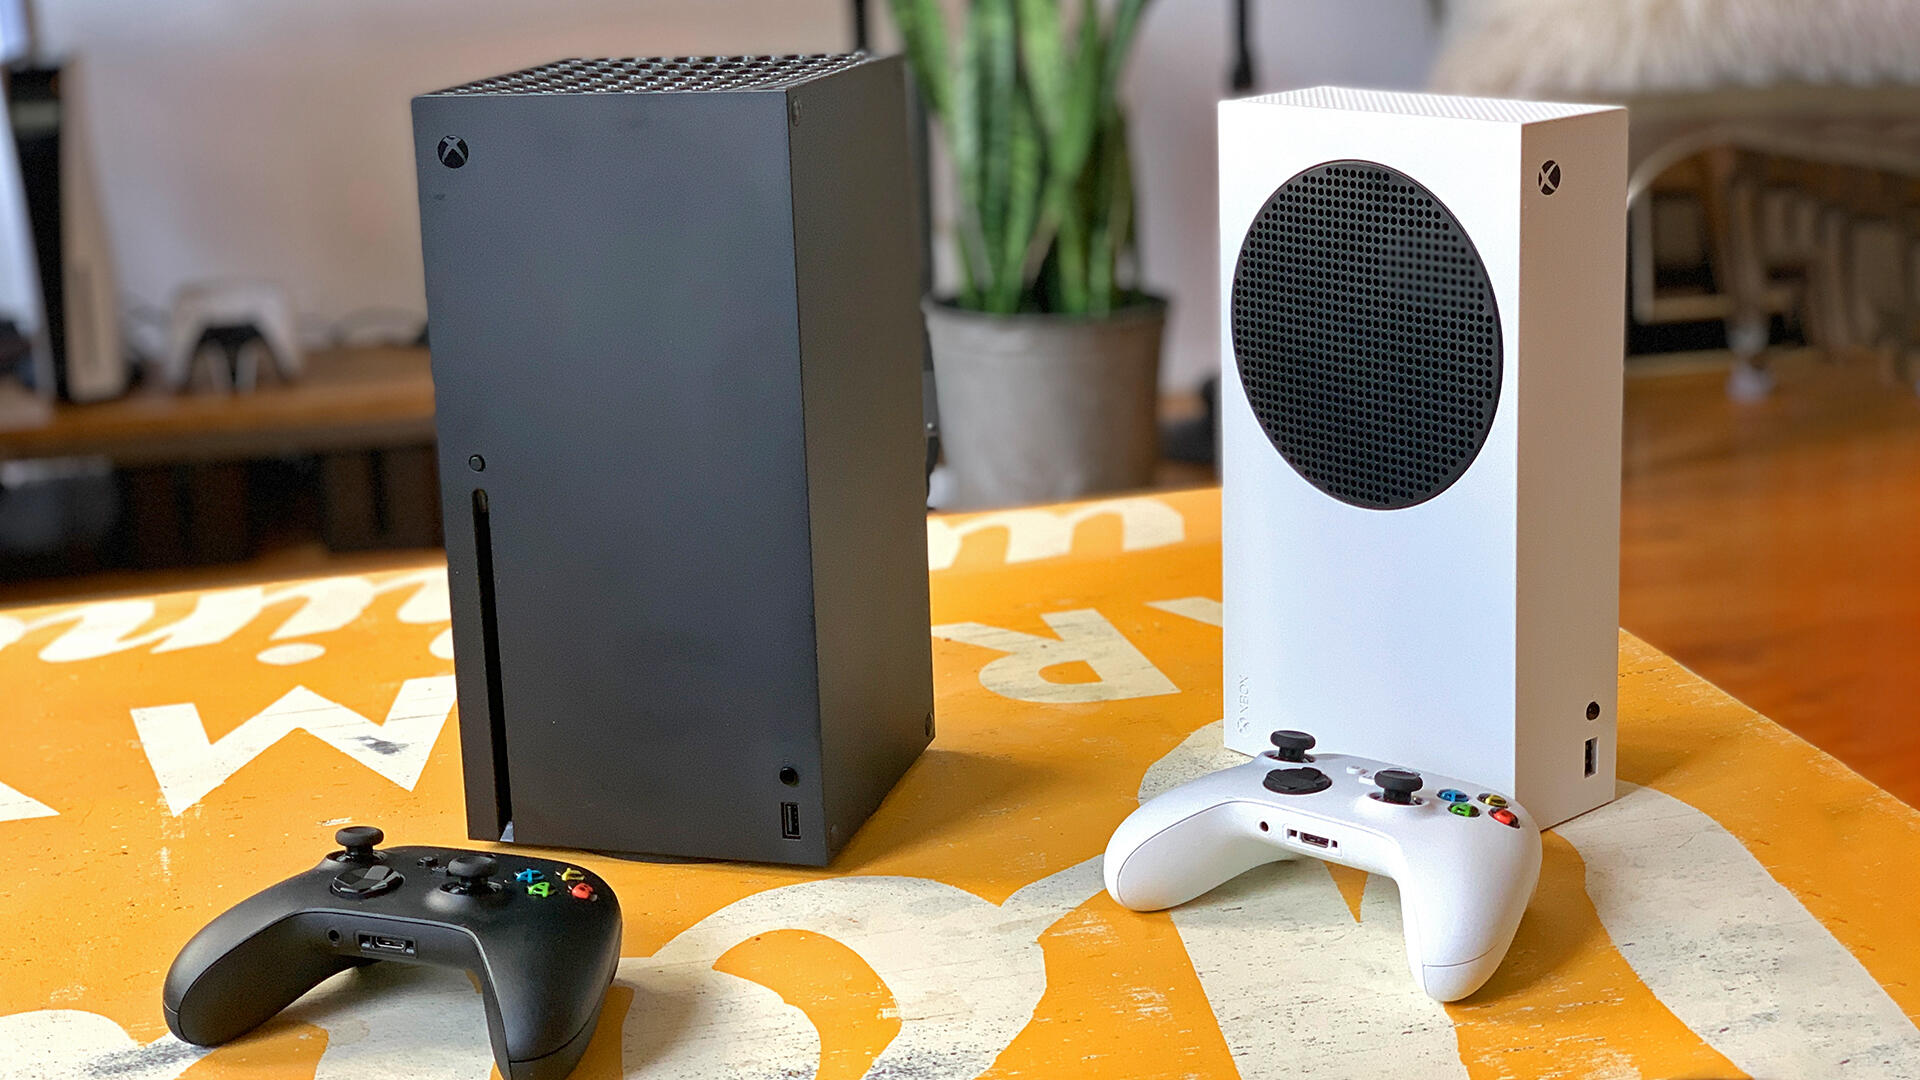 Video: Xbox Series X and Series S offer a fine-tuned, streamlined Xbox experience